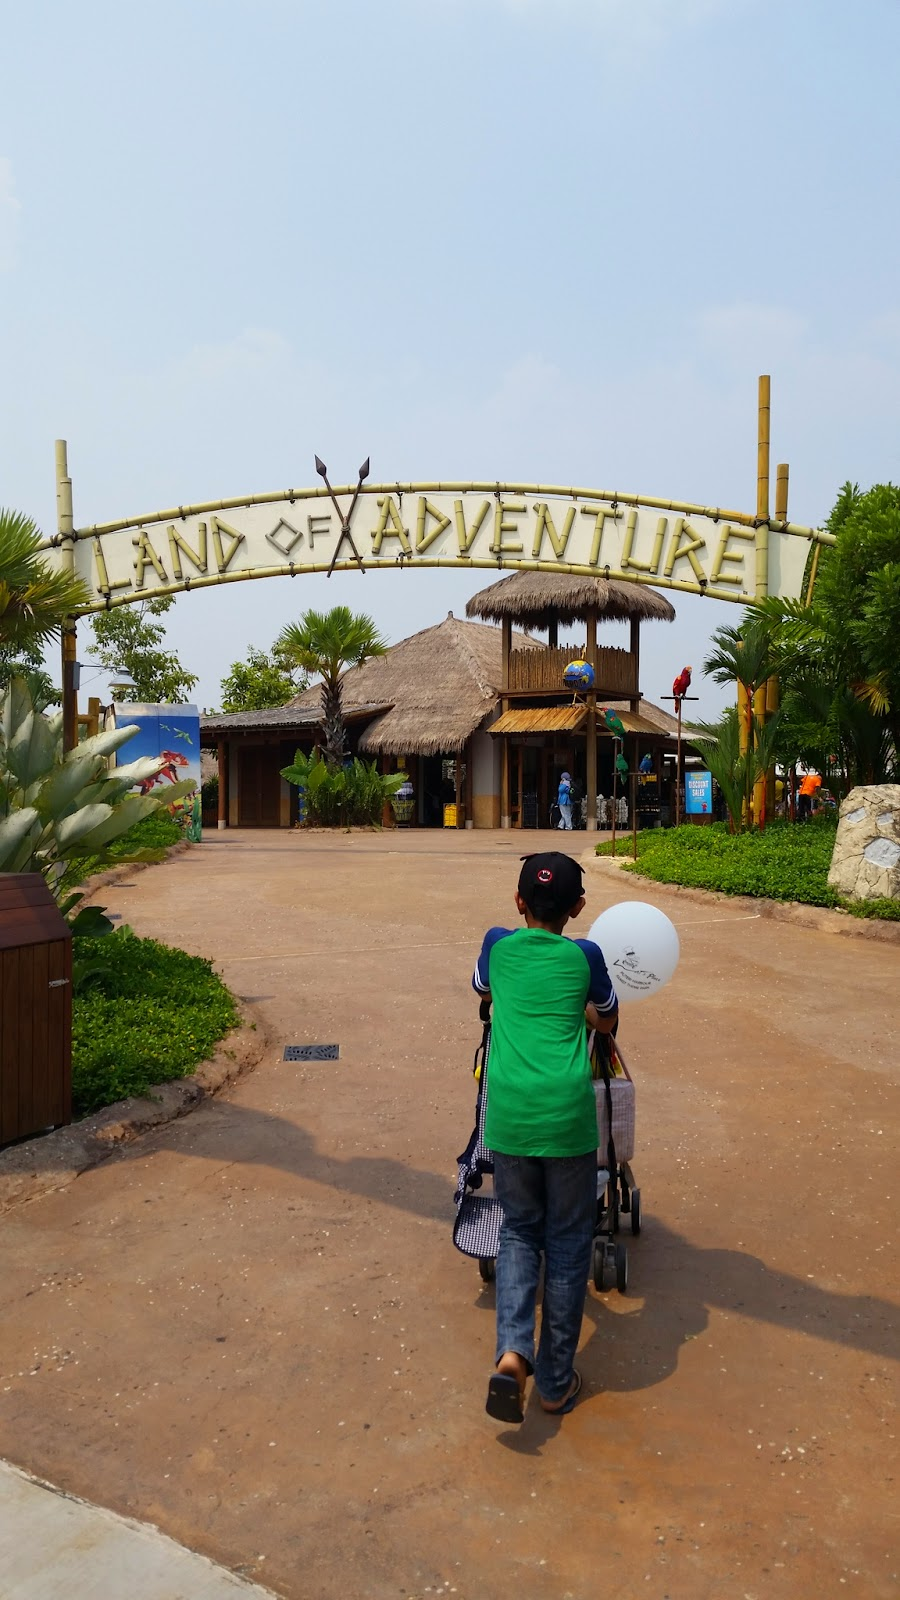 Land of Adventure, LEGOLAND